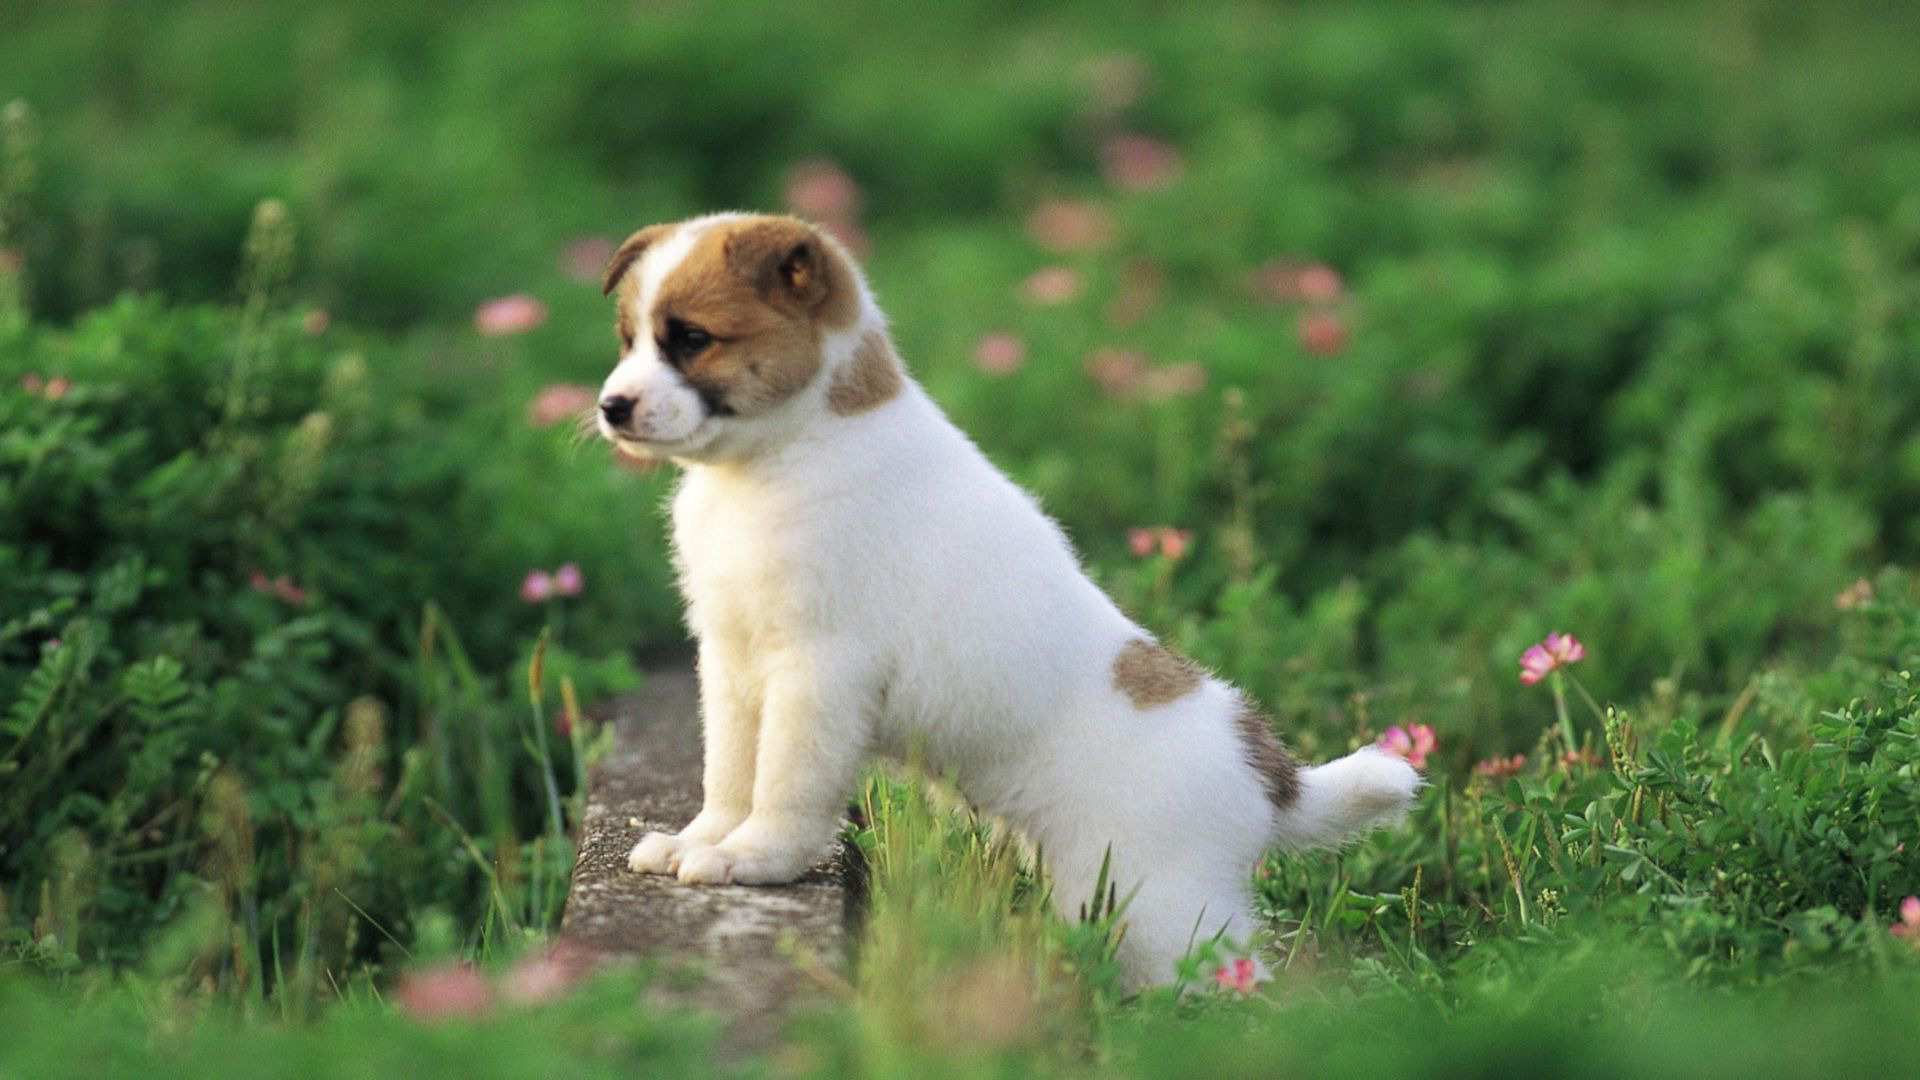 Cute puppy wallpaper   388822 1920x1080